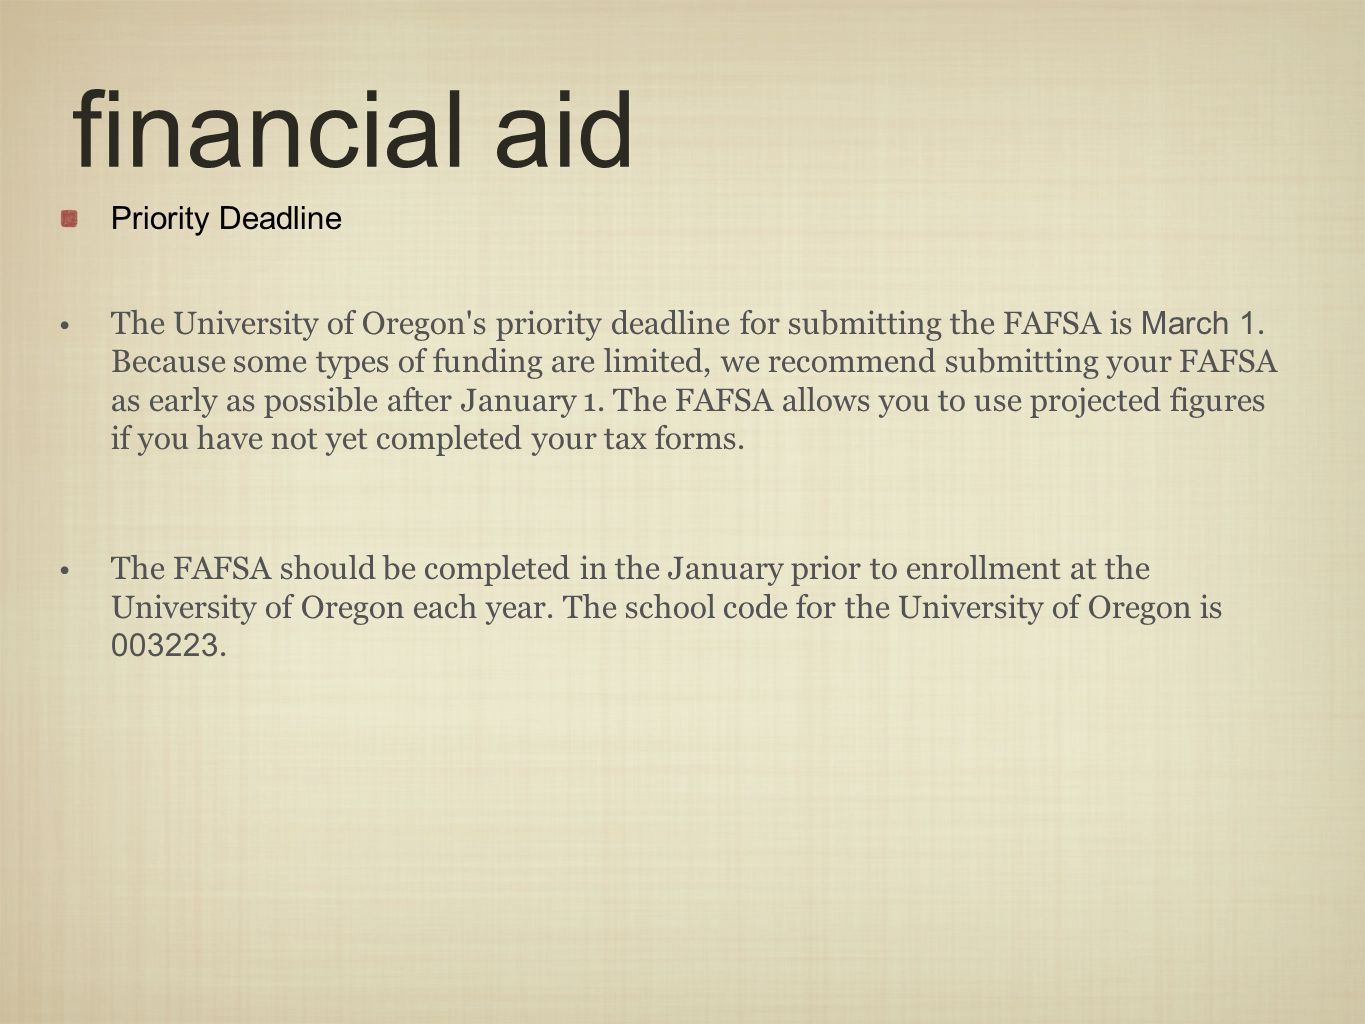 financial aid Priority Deadline The University of Oregon's priority deadline for submitting the FAFSA is March 1. Because some types of funding are li